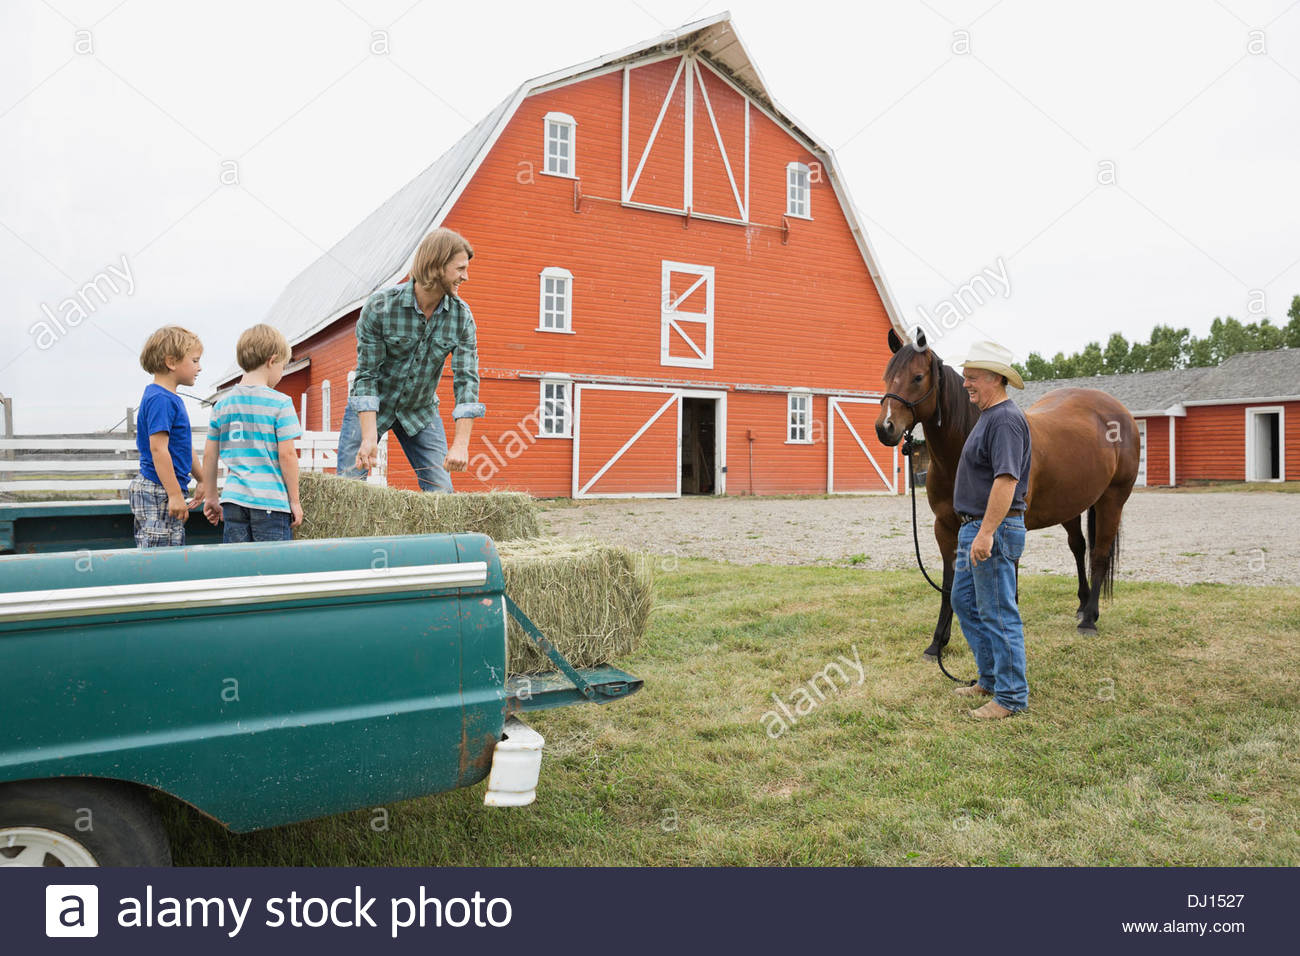 Man unloading hay from pick up truck - Stock Image